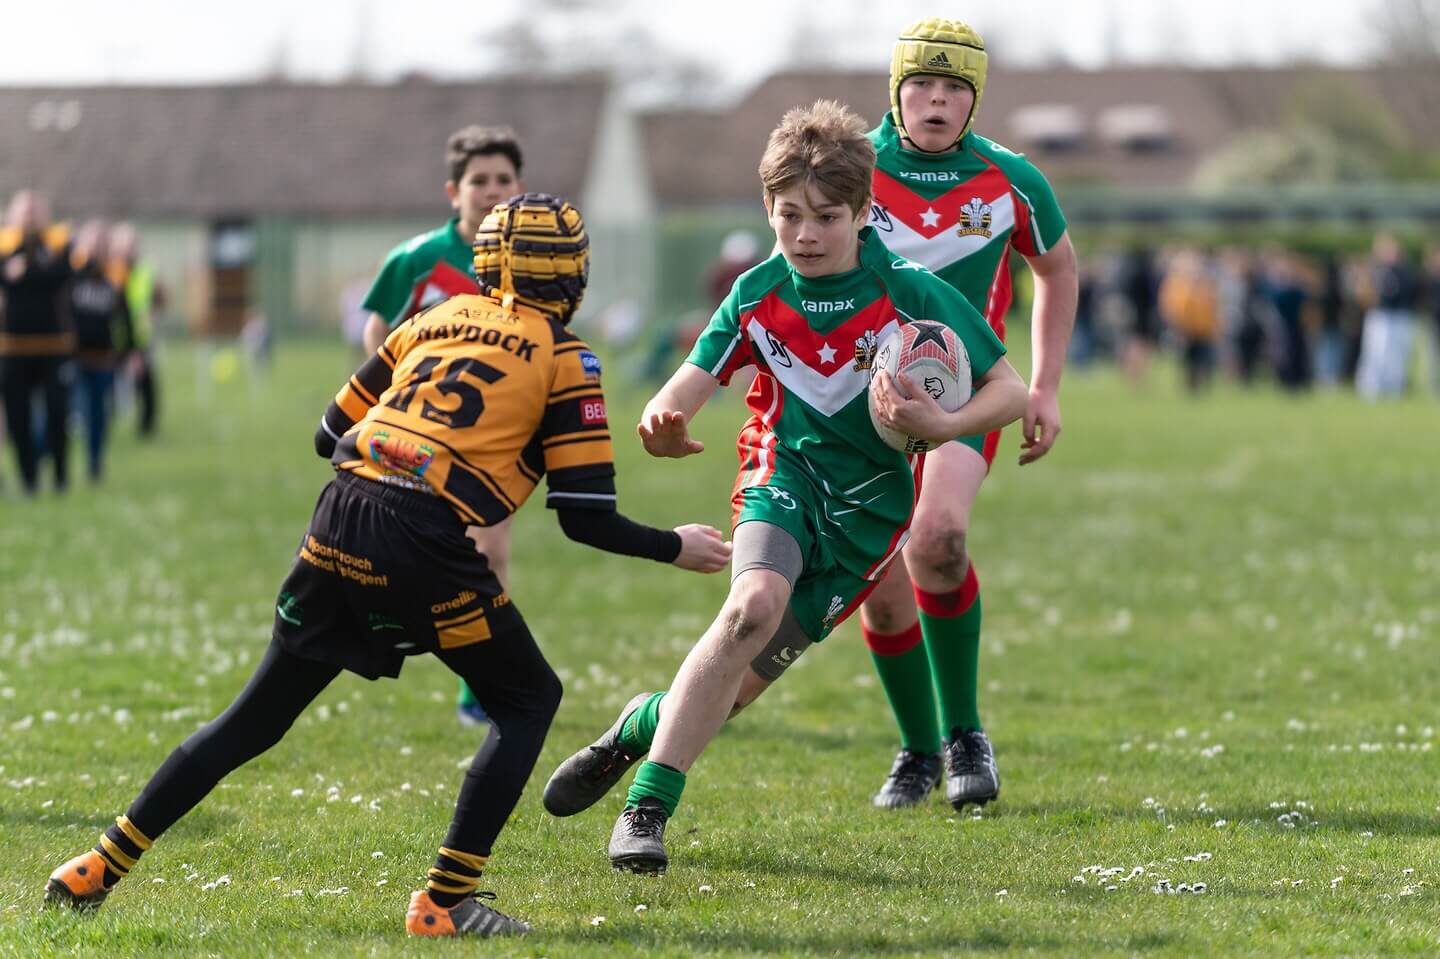 Report: Haydock Warriors U13s 10-54 North Wales Crusaders U13s